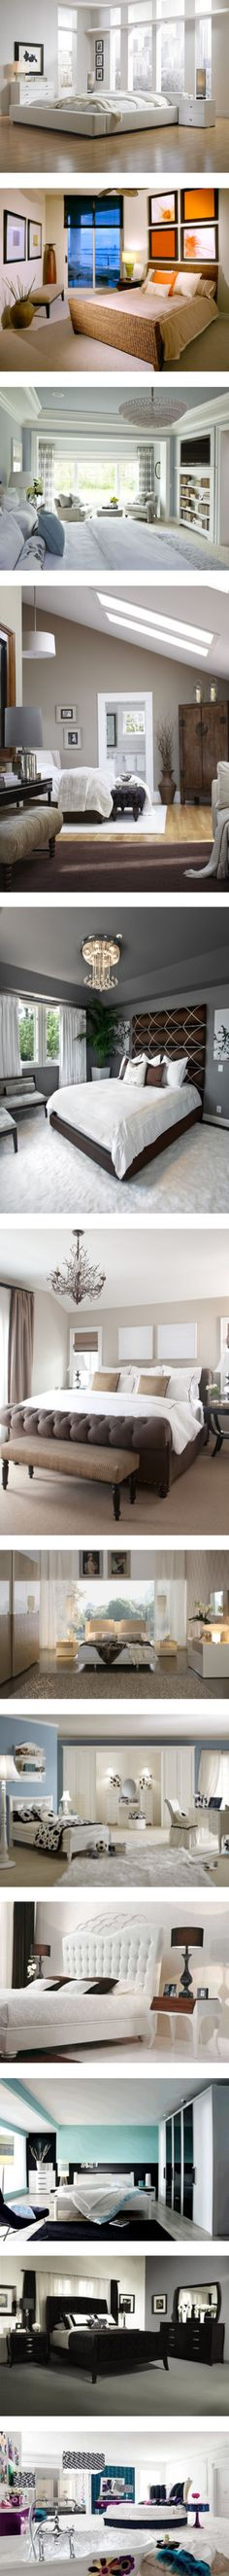 """bedrooms, kitchens, houses, ect."" by xx-little-dreamer-xx ❤ liked on Polyvore"